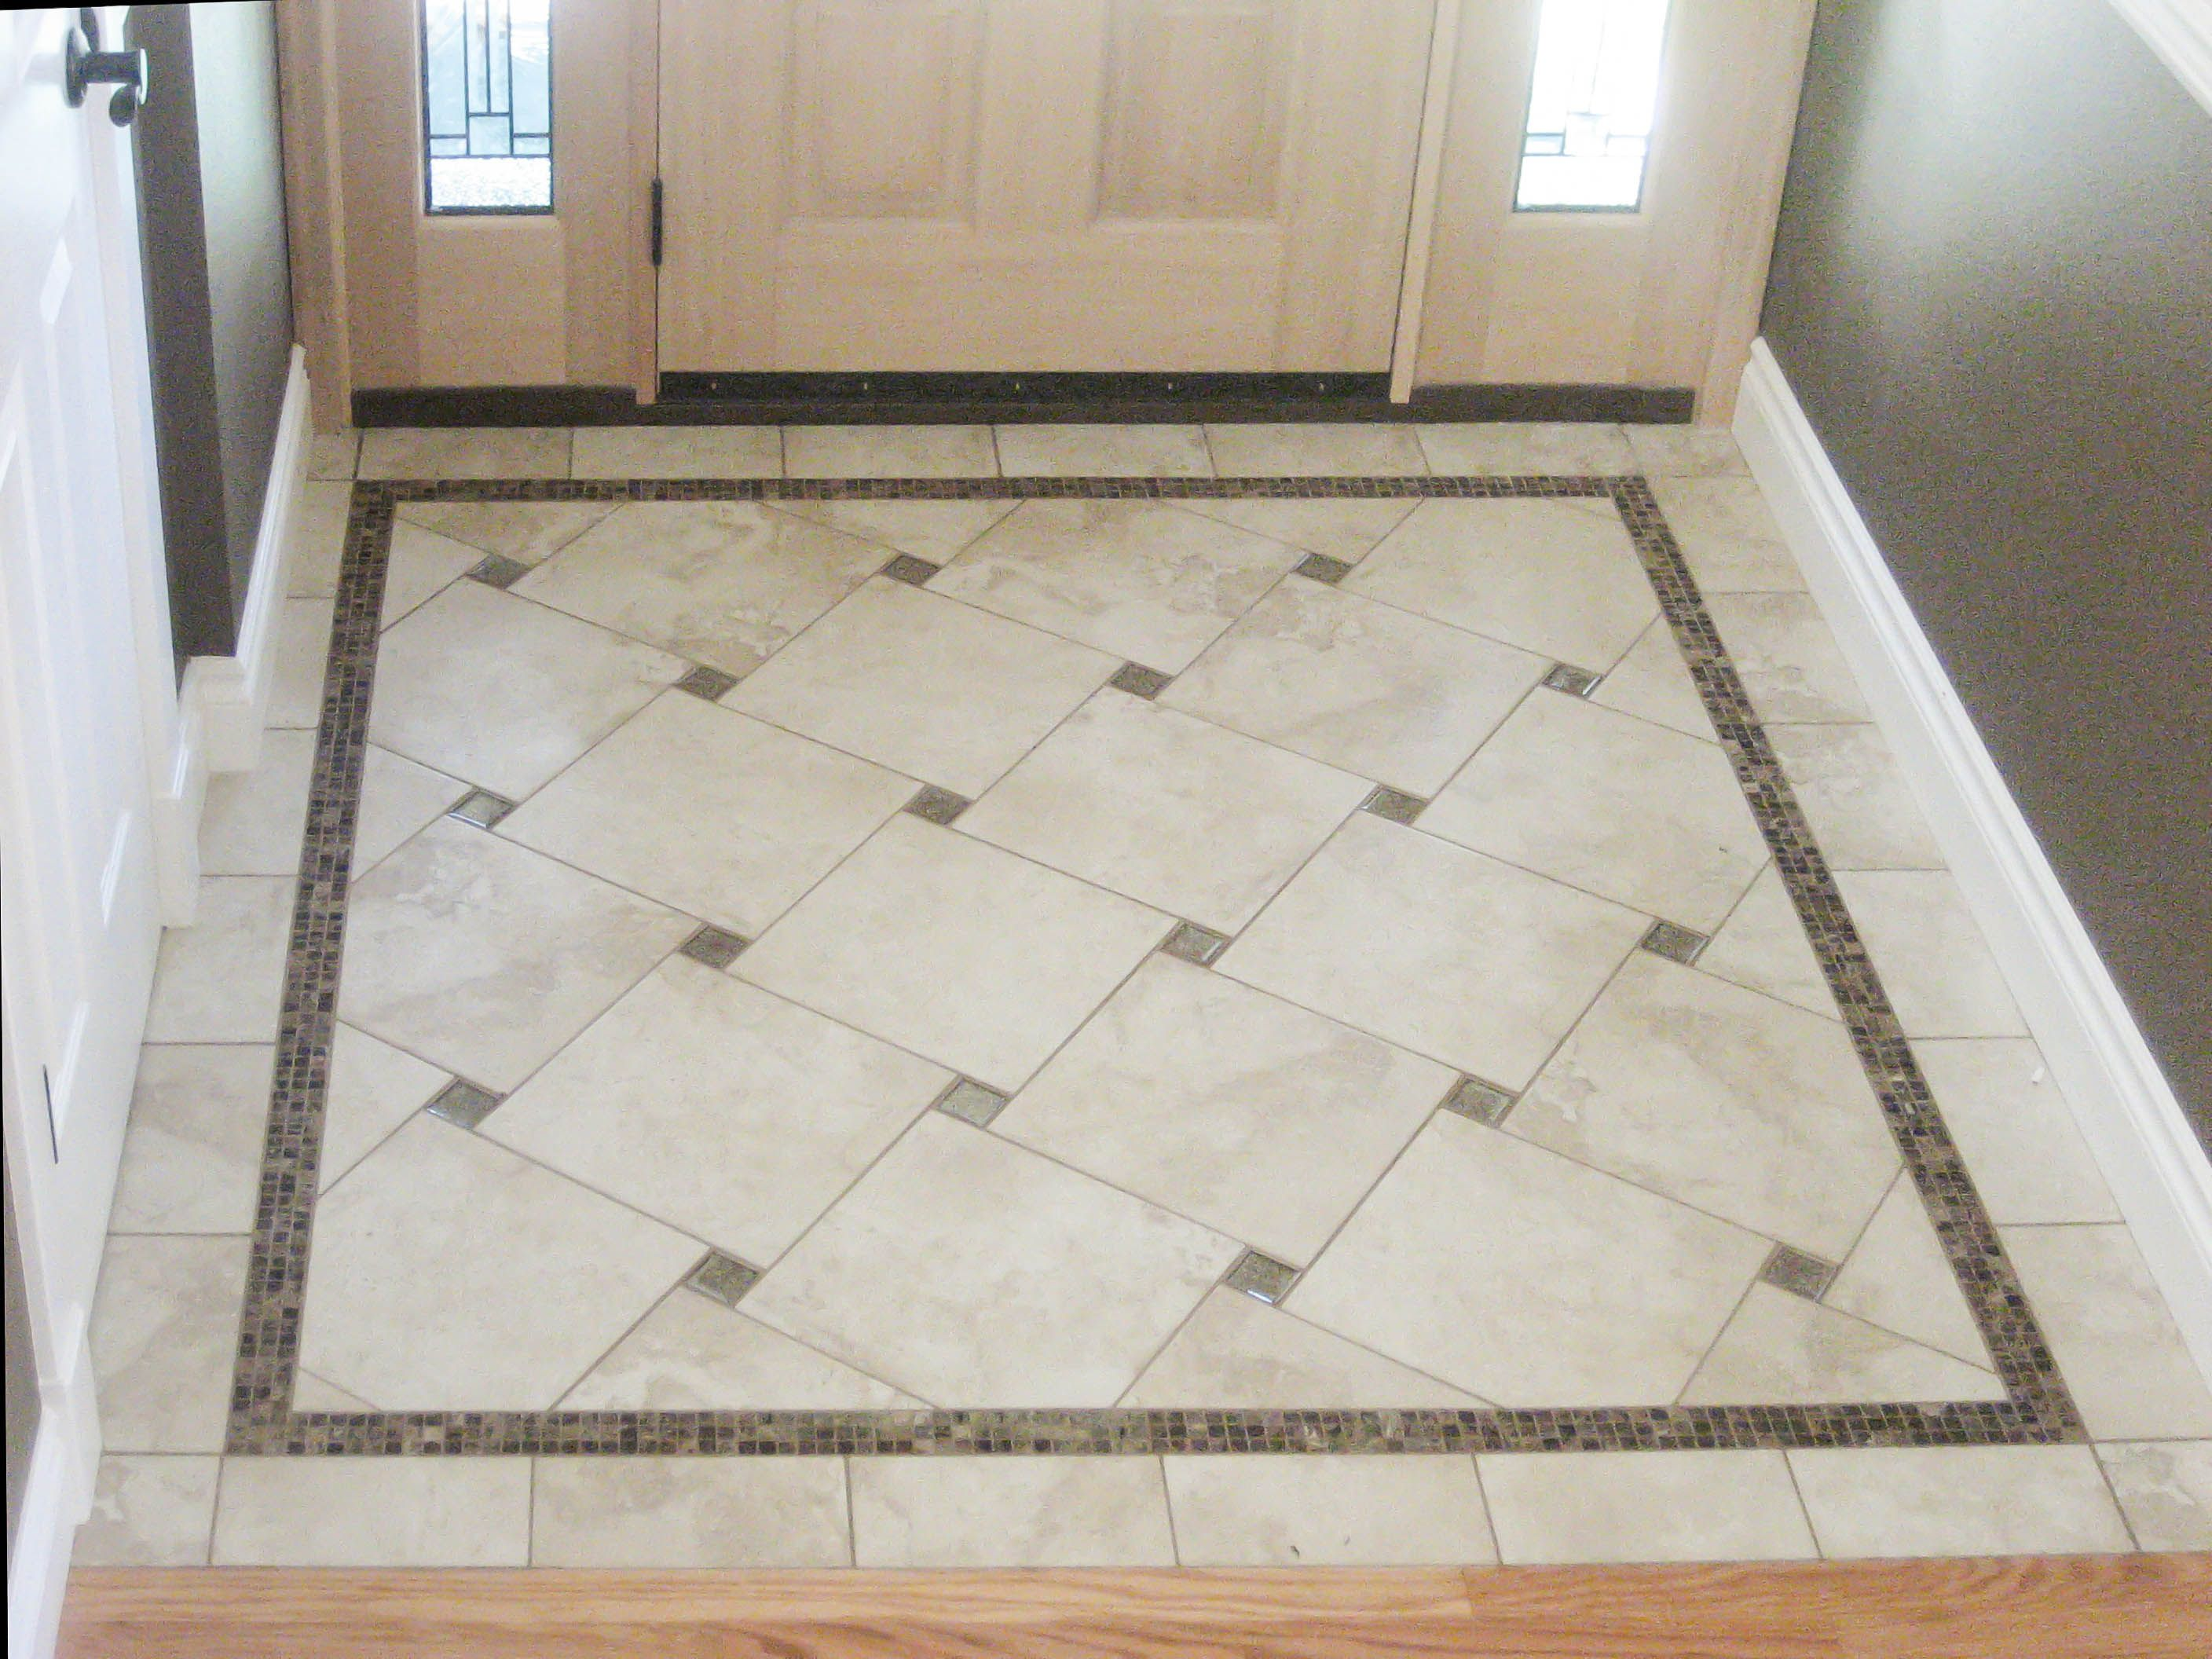 floor tiles design. Entry Floor Tile Ideas | Photos Gallery - Seattle Contractor IRC Servic Tiles Design L